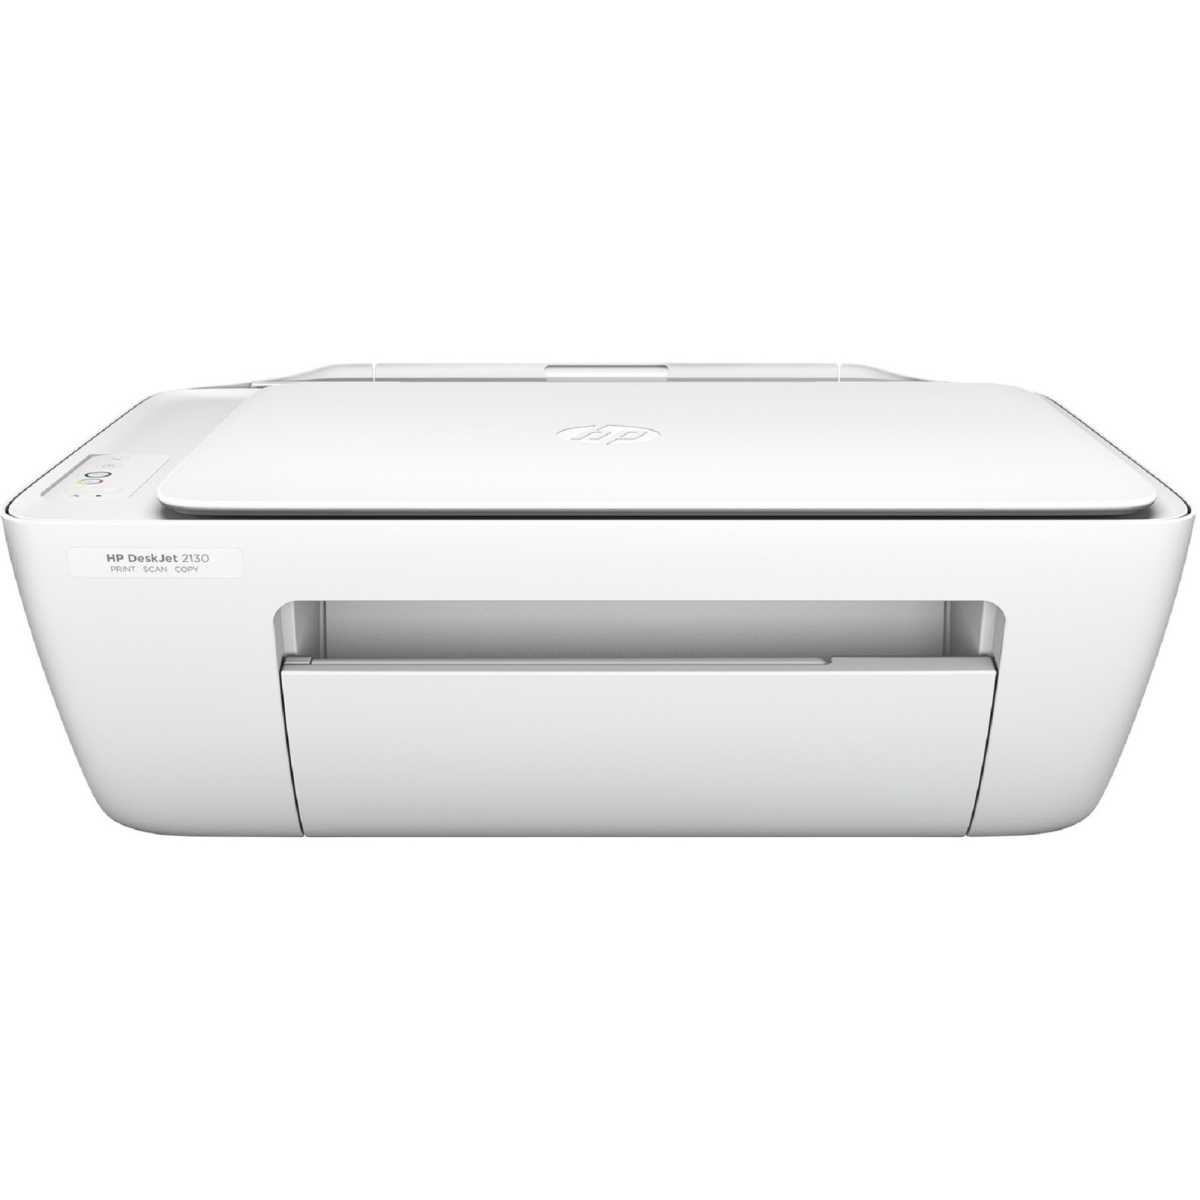 Hewlett-Packard, Deskjet, 2131, 7.5ppm, All-in-One, White,